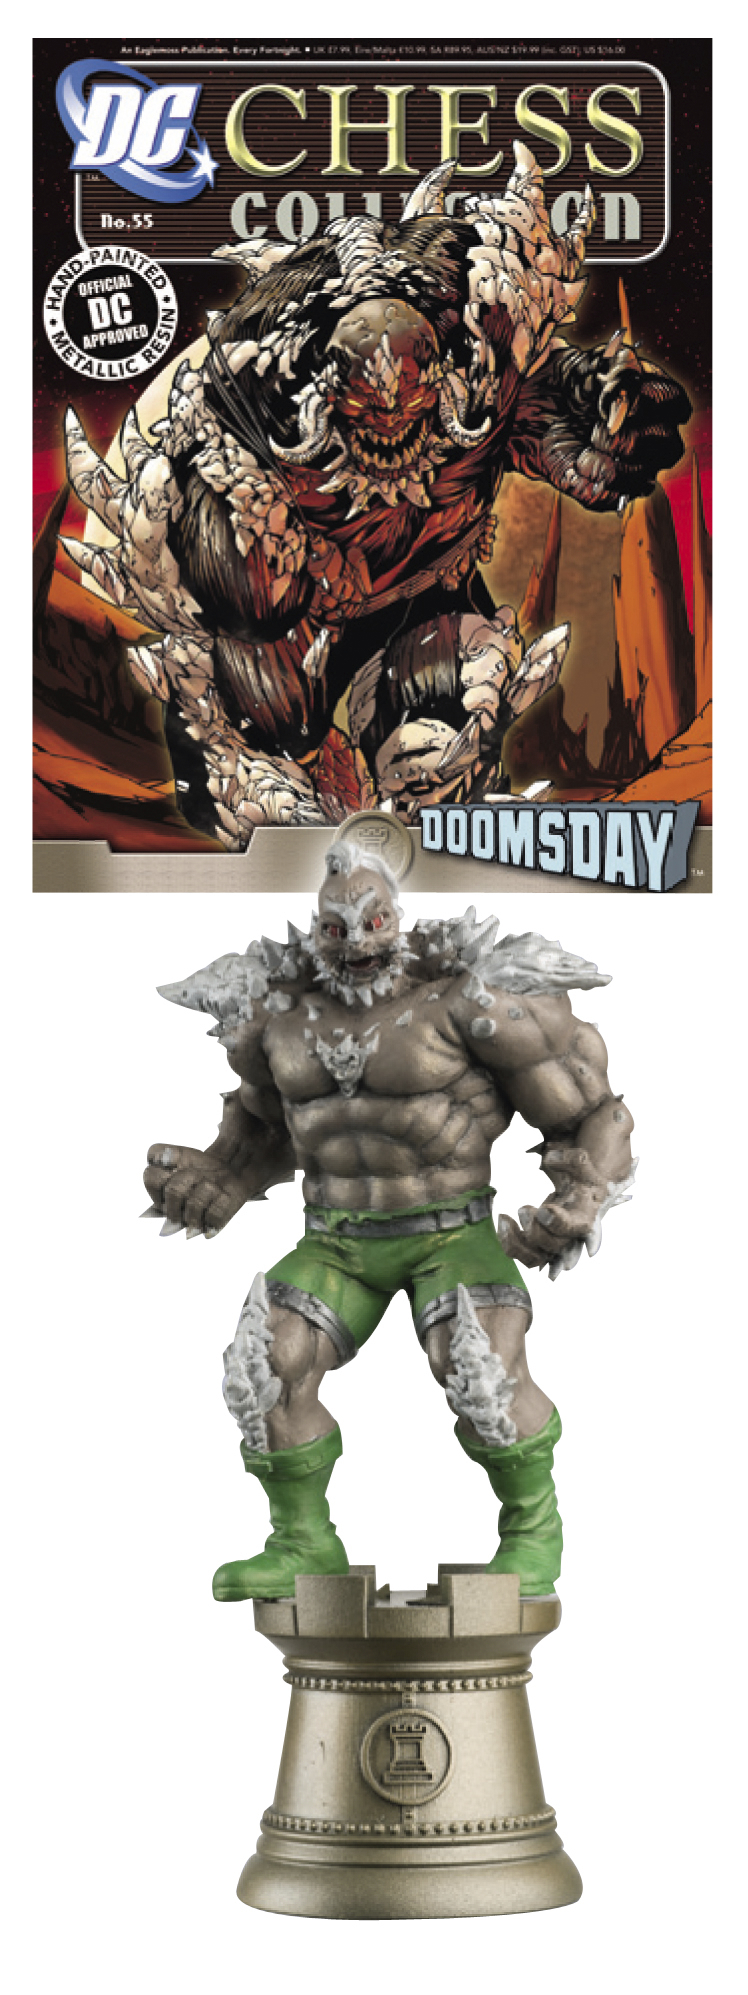 DC SUPERHERO CHESS FIG COLL MAG #55 DOOMSDAY BLACK ROOK